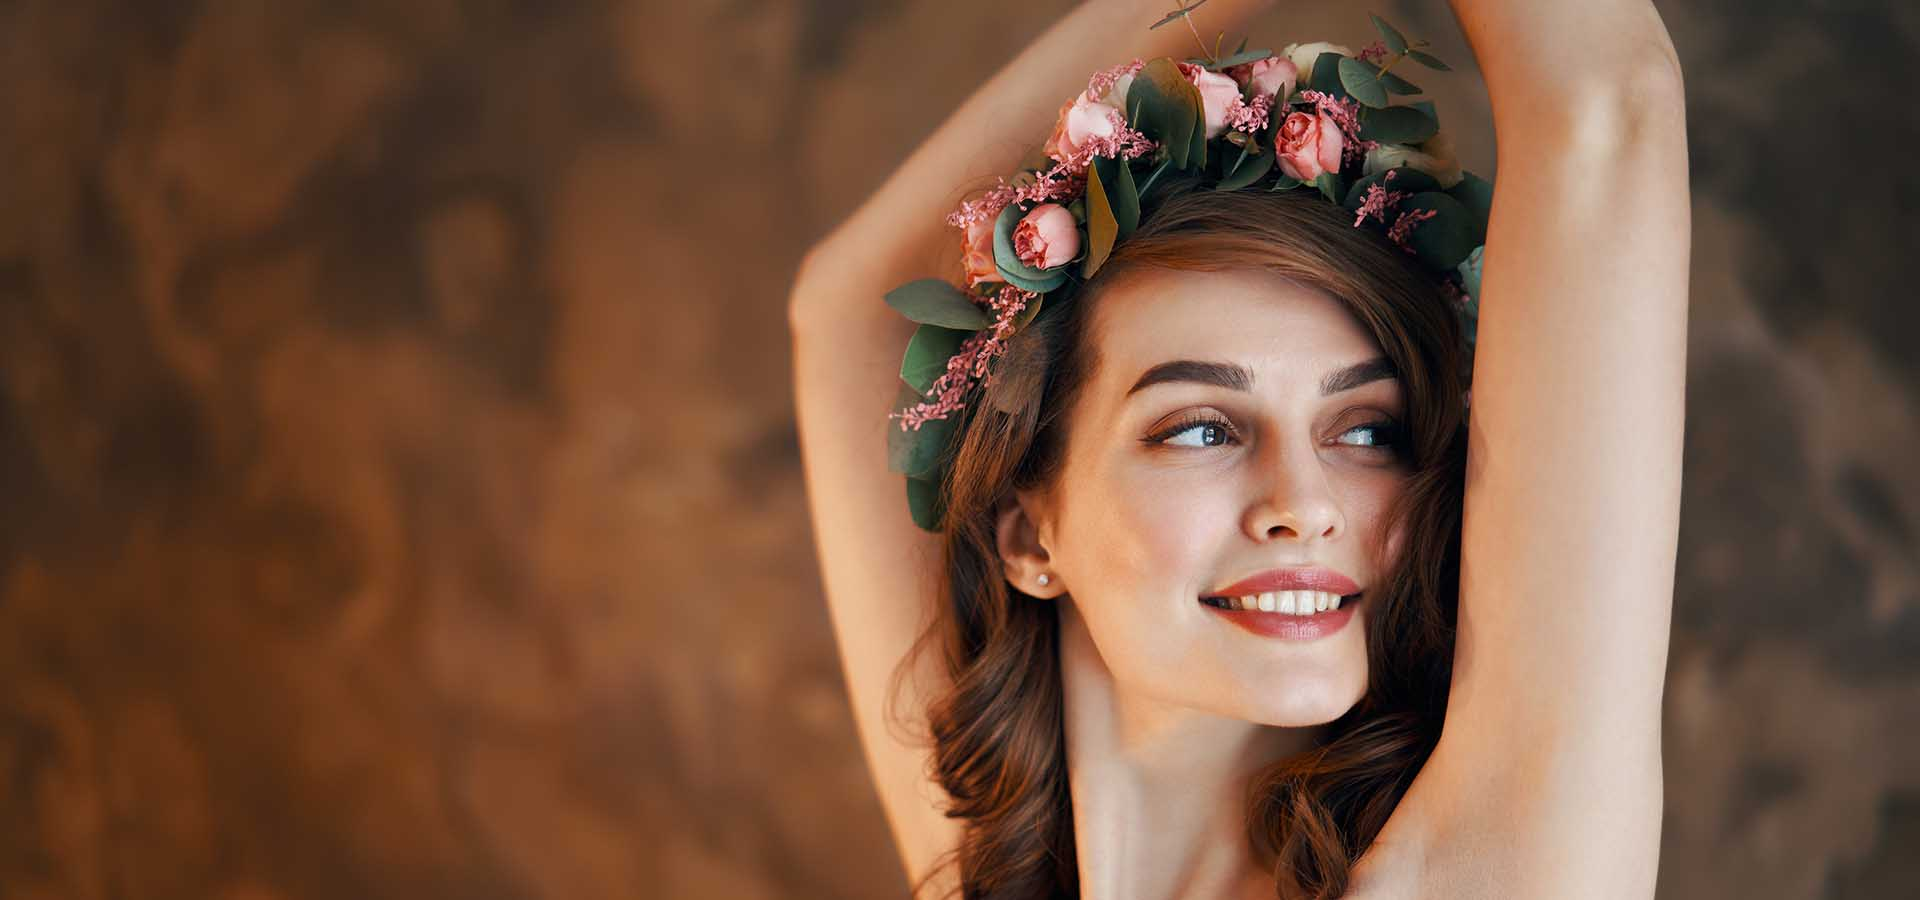 Young and beautiful. Happy smiling woman portrait.